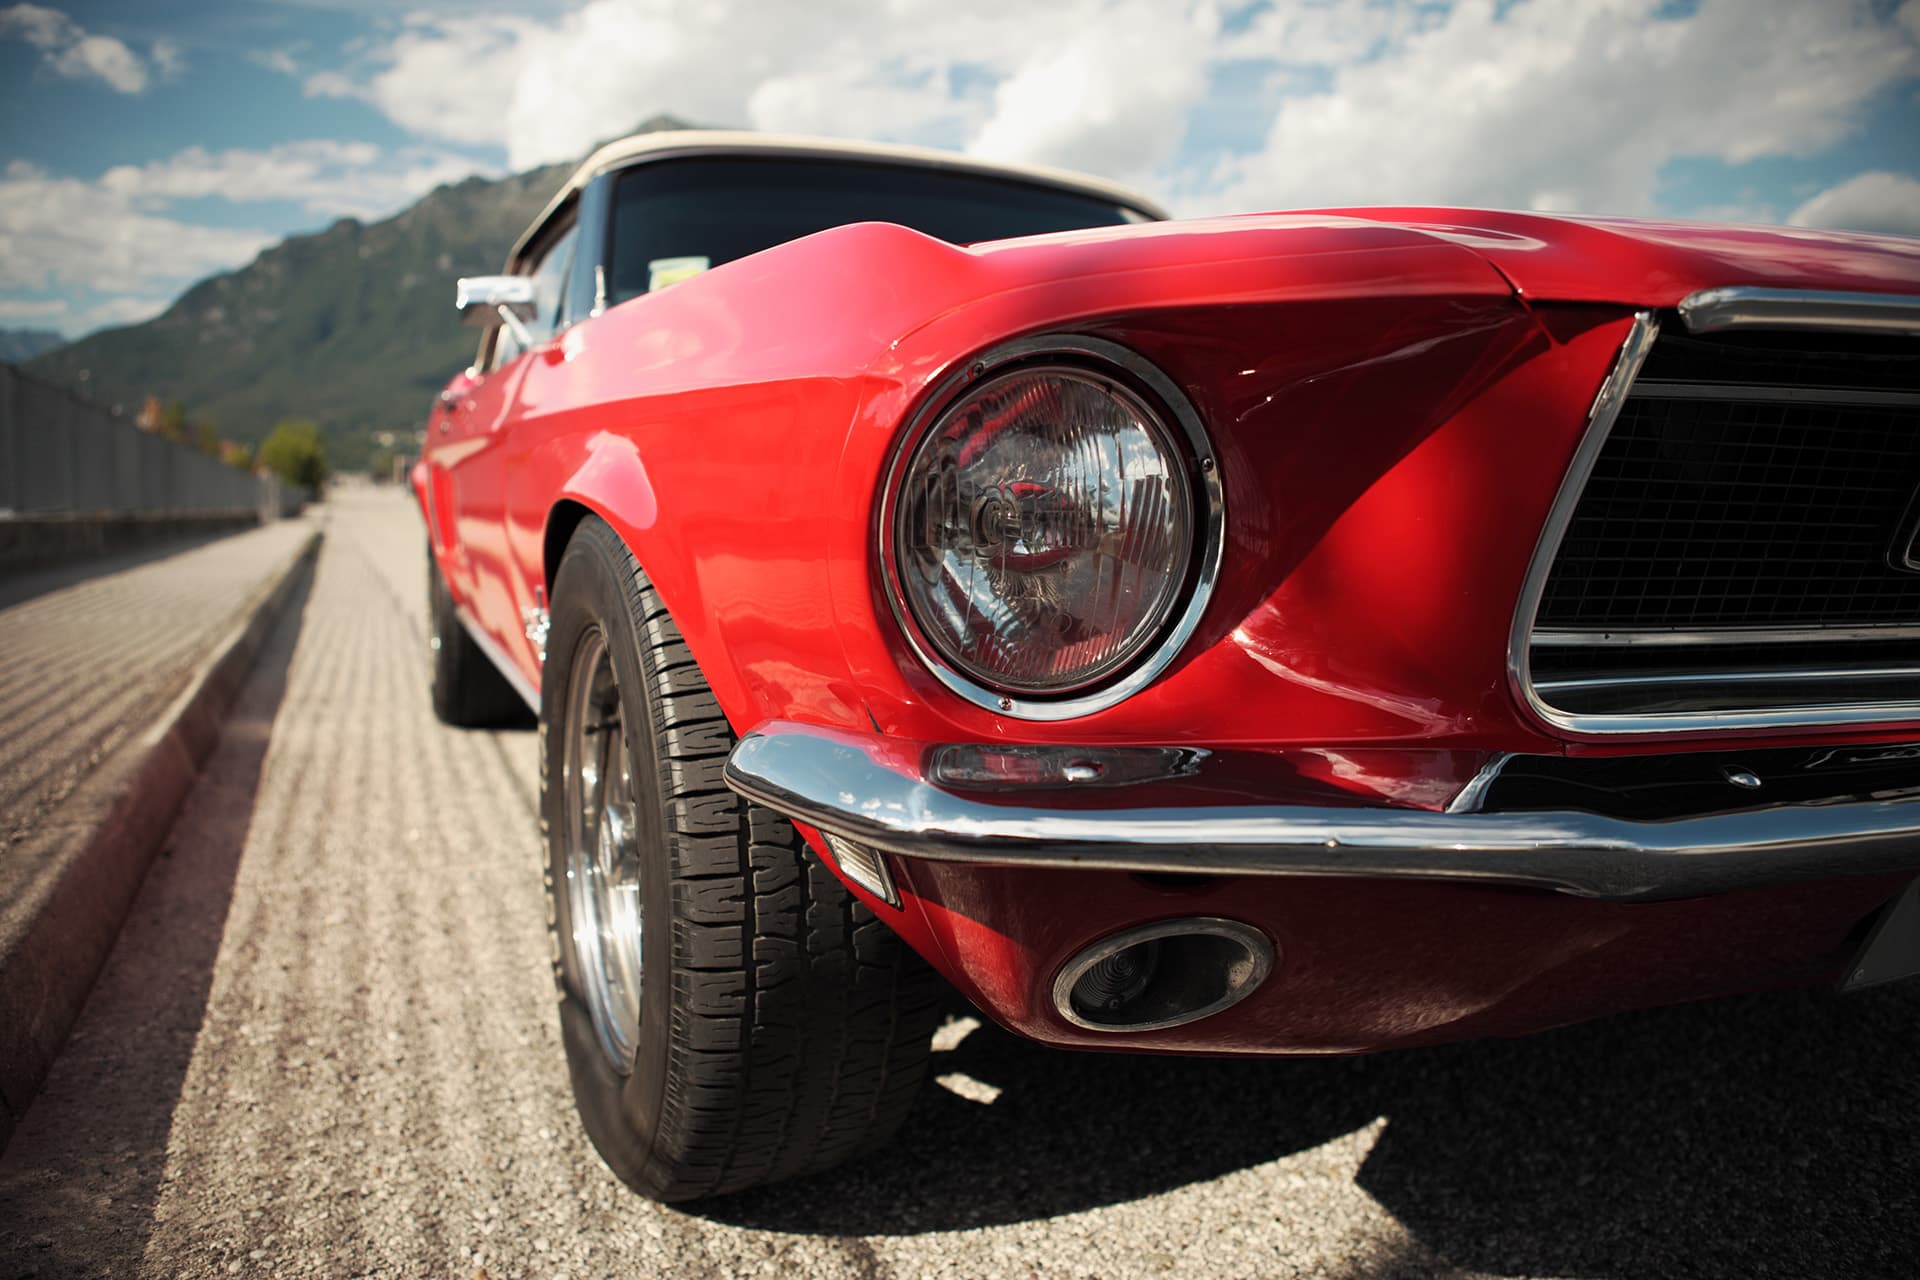 Classic car insurance for red vintage mustang